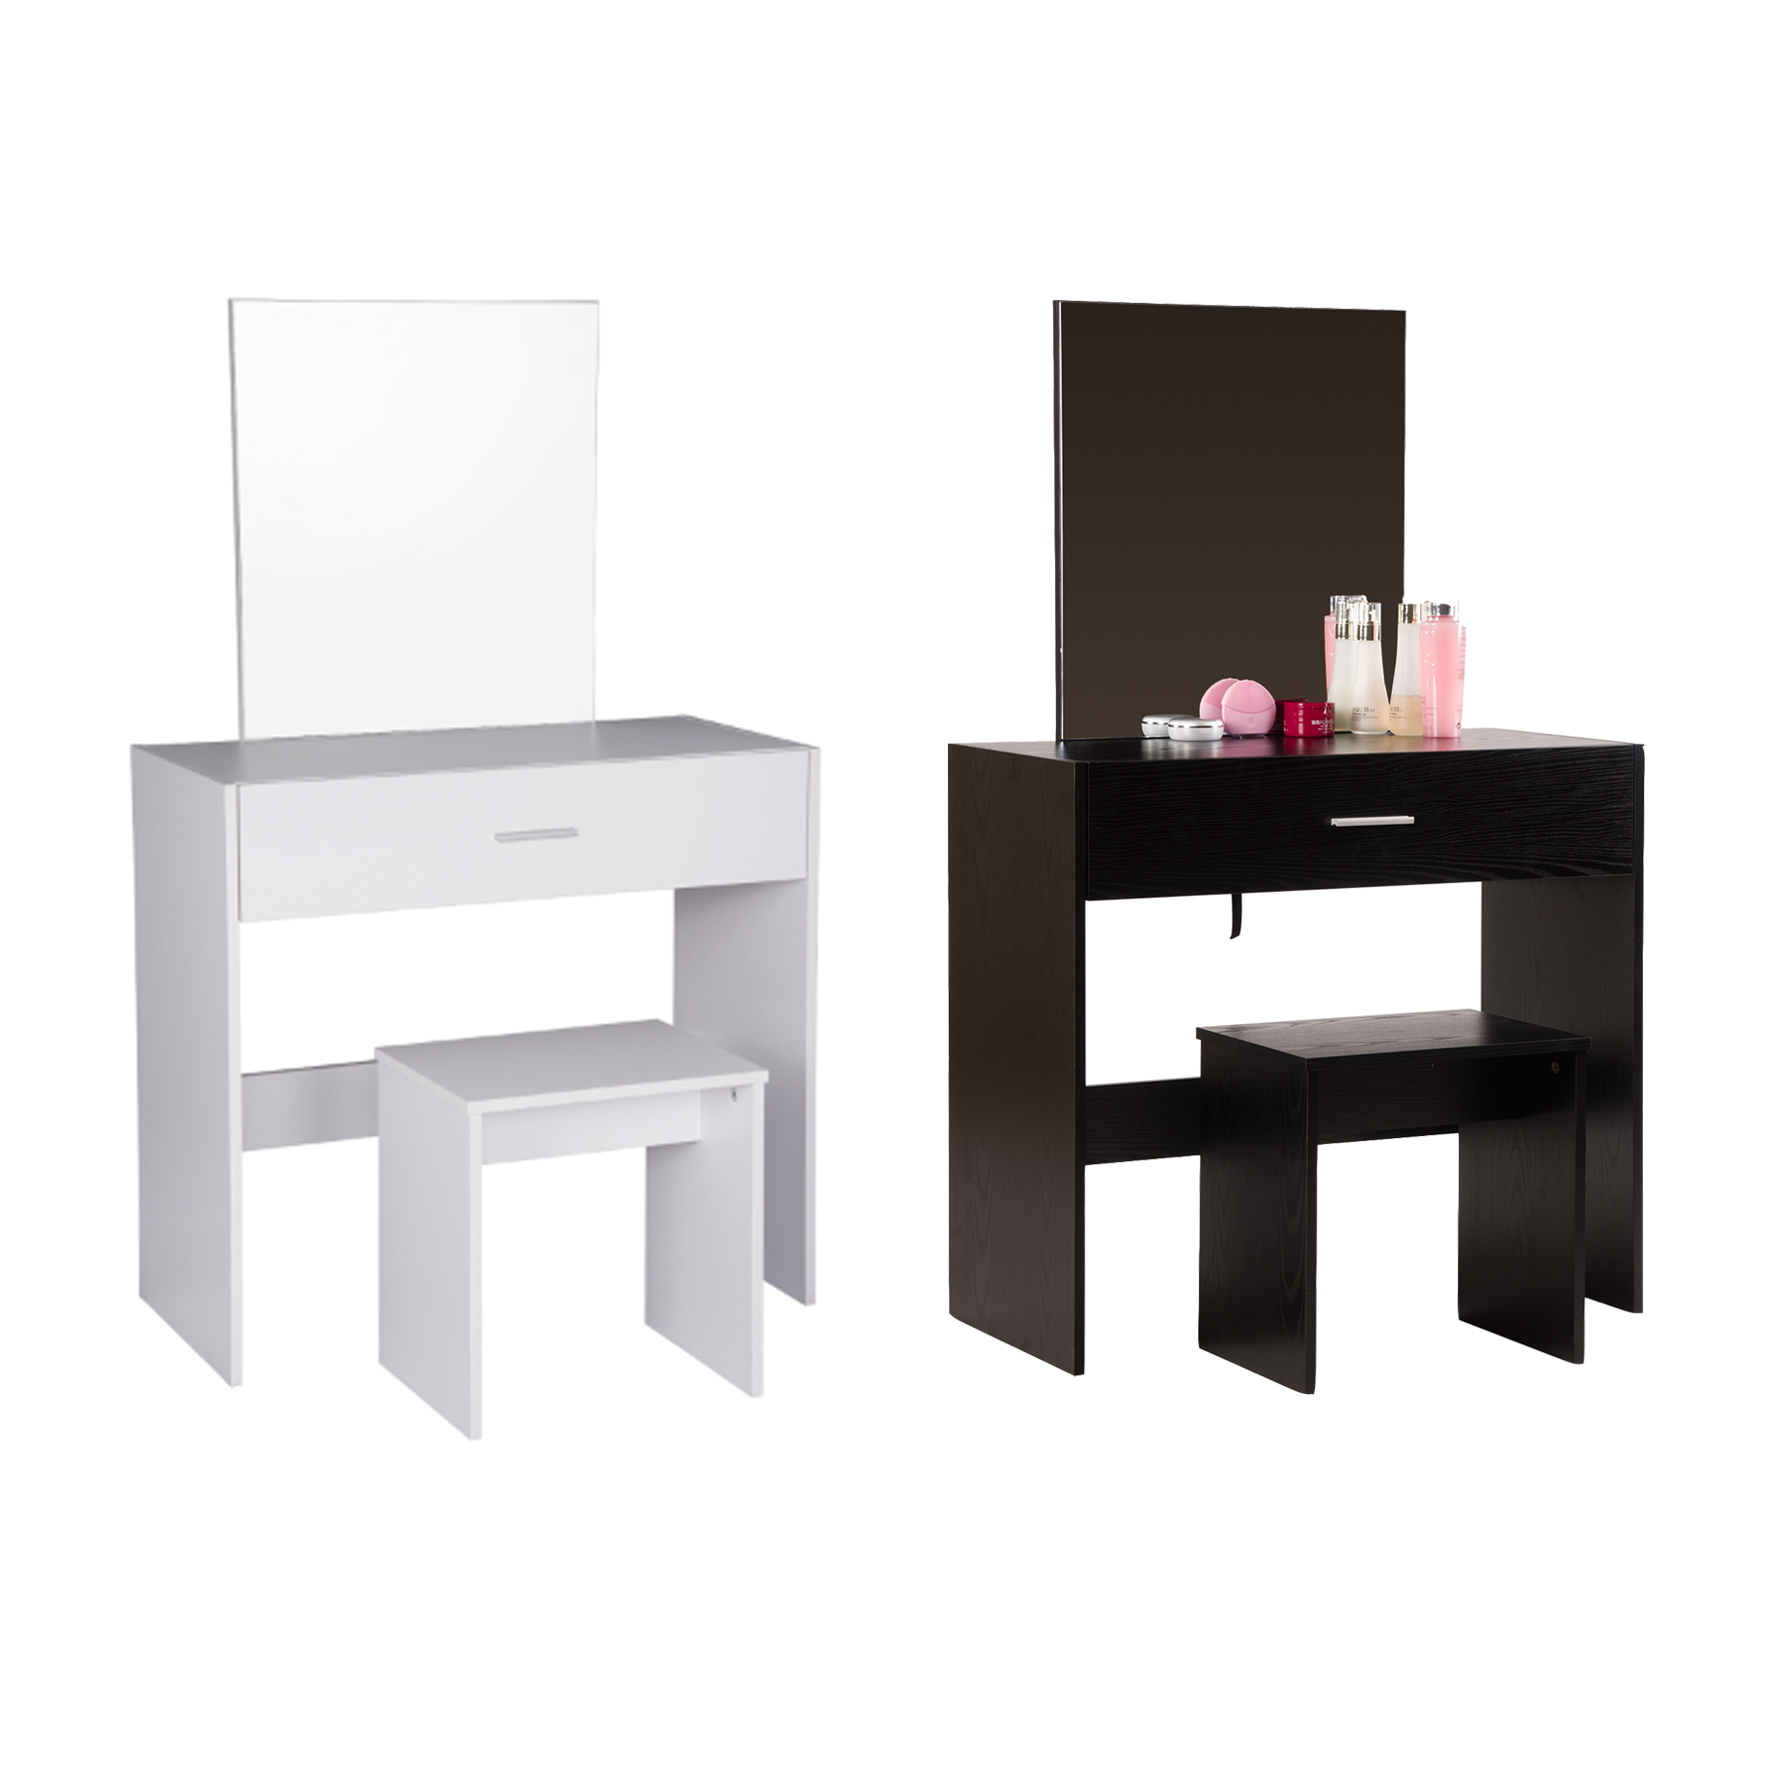 schminktisch mit spiegel und hocker kosmetiktisch frisiertisch schreibtisch 924 ebay. Black Bedroom Furniture Sets. Home Design Ideas